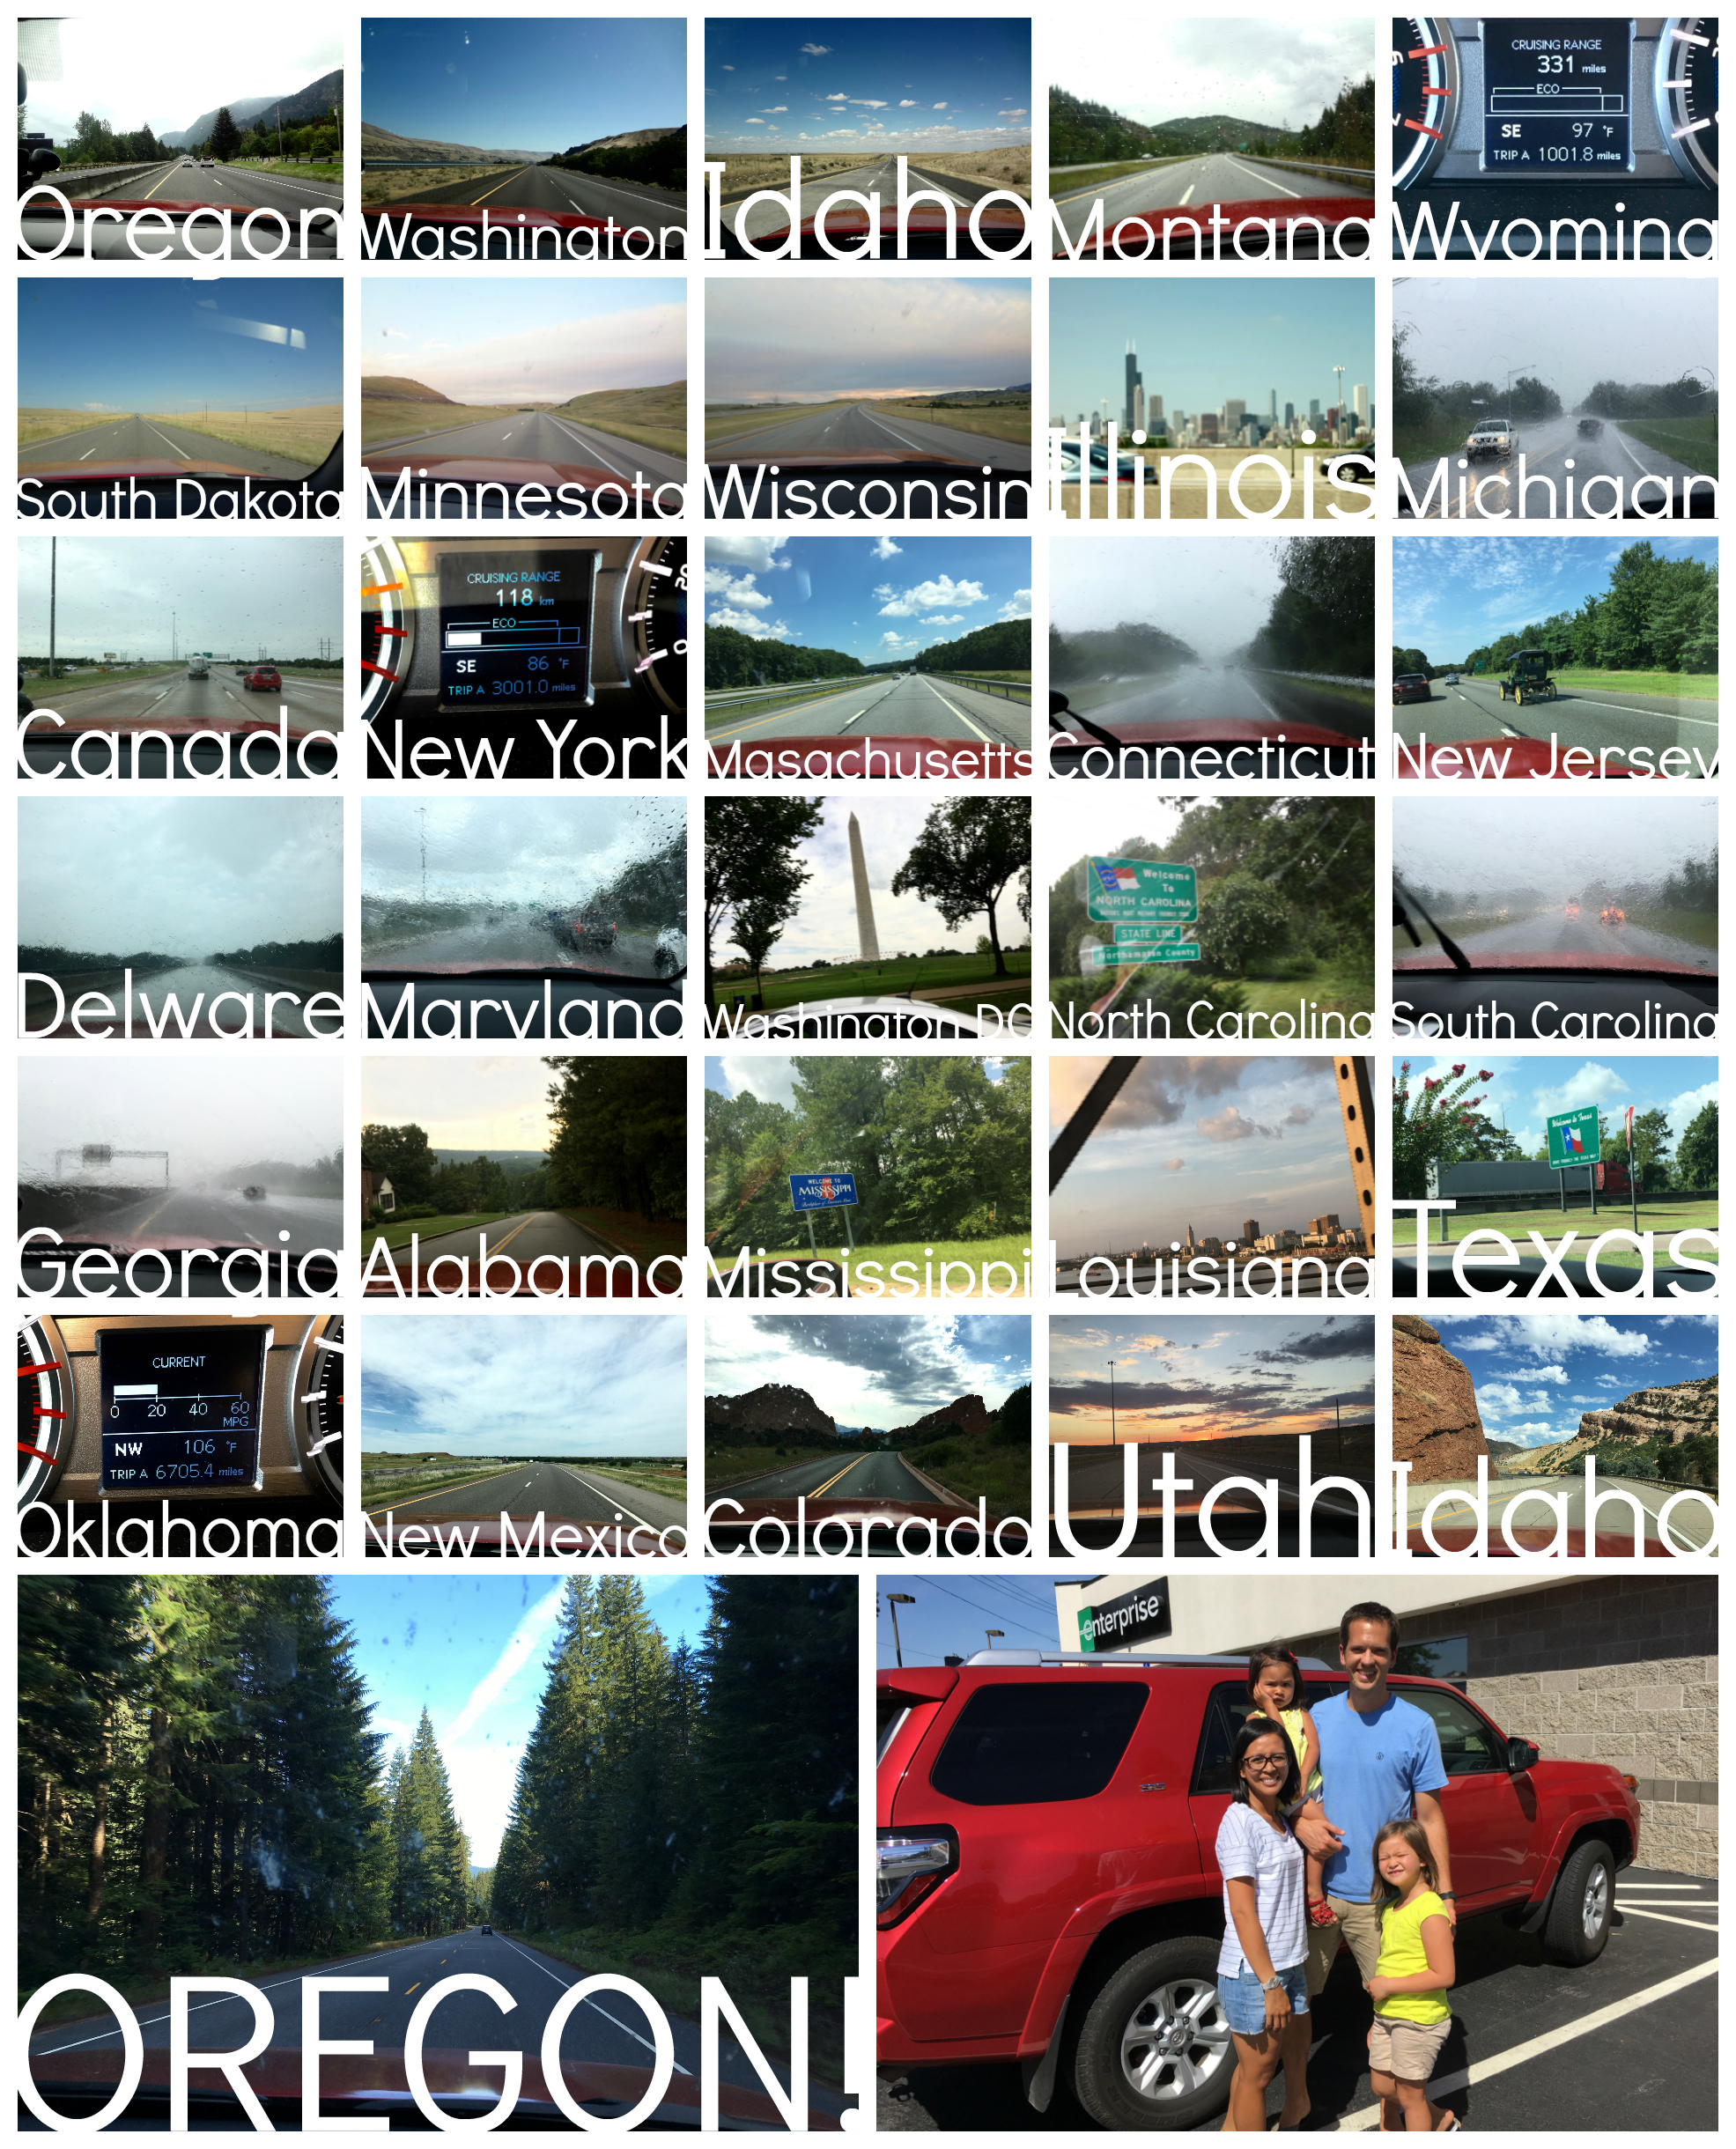 We didn't get a photo of every state we visited or drove through, so there are a few missing in this collage.